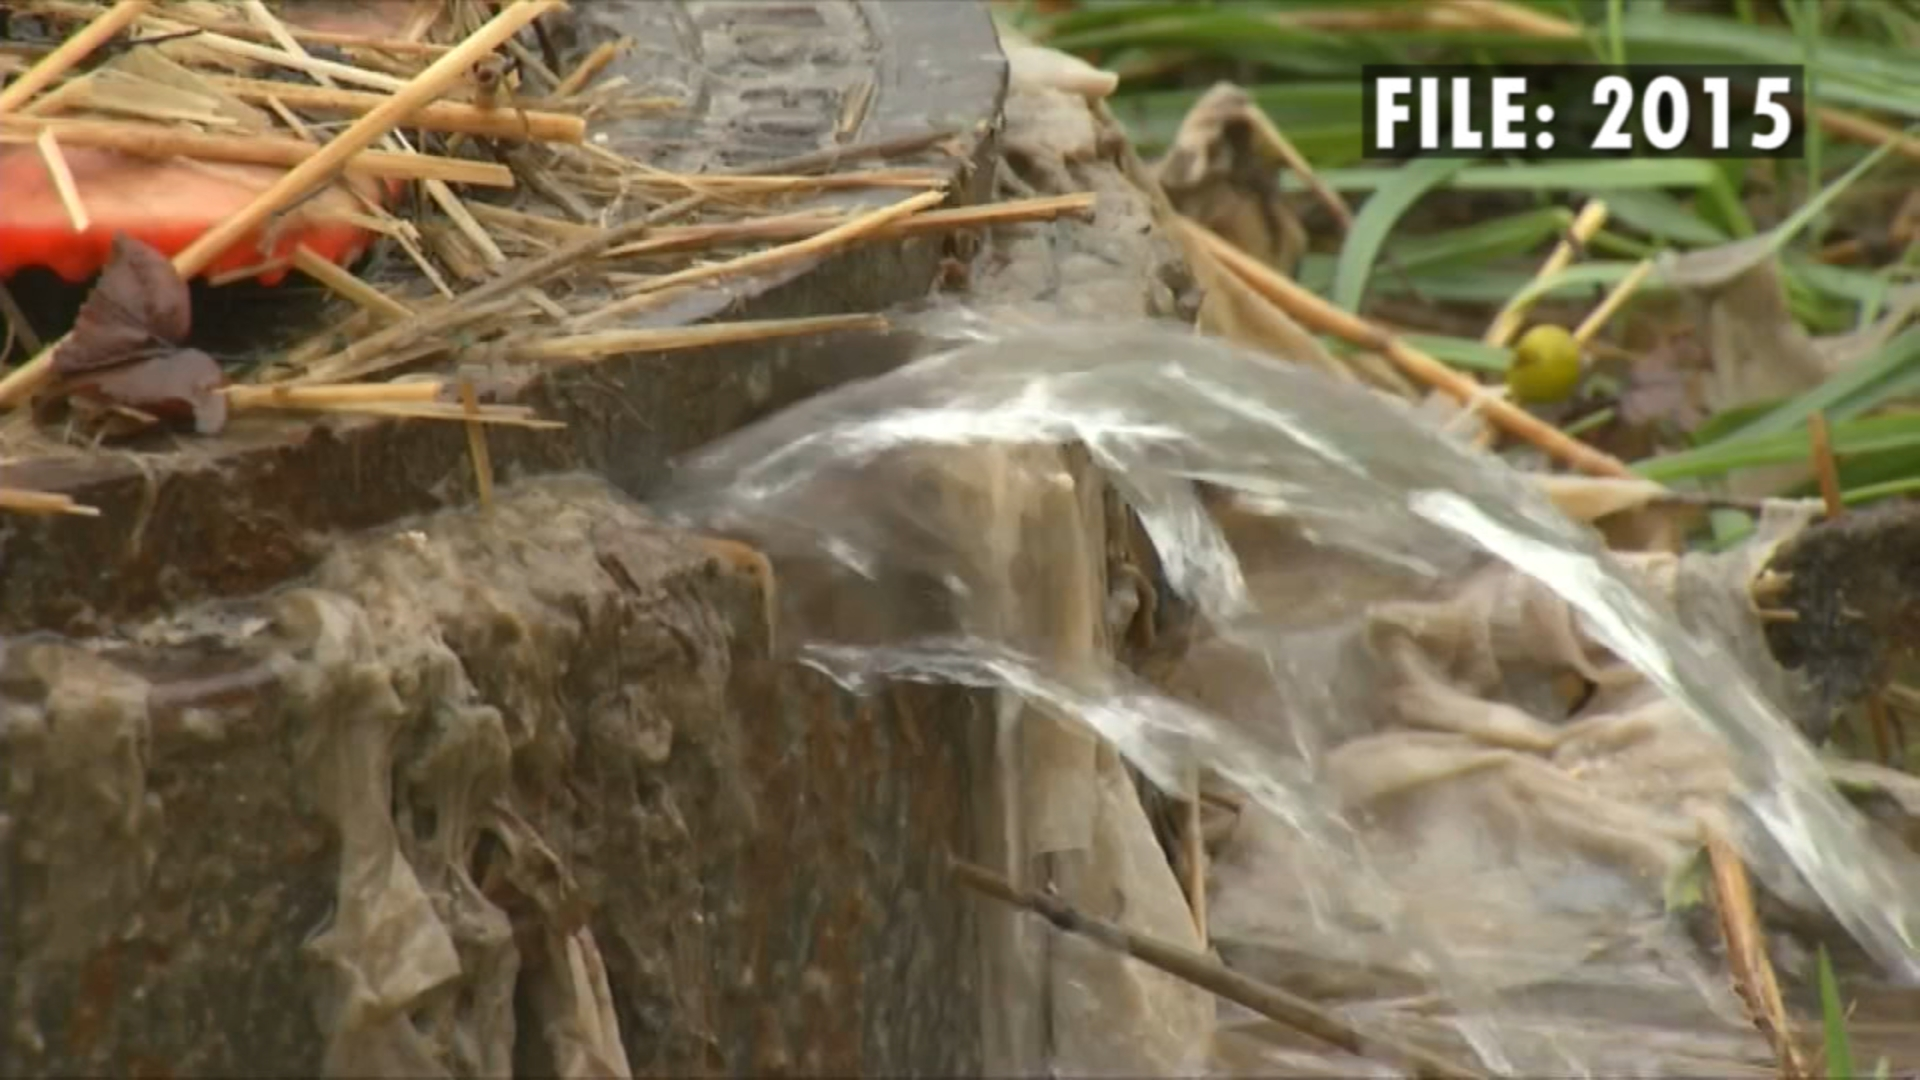 WLOS has covered sanitary sewer overflows in Brevard for years. (Photo credit: WLOS)